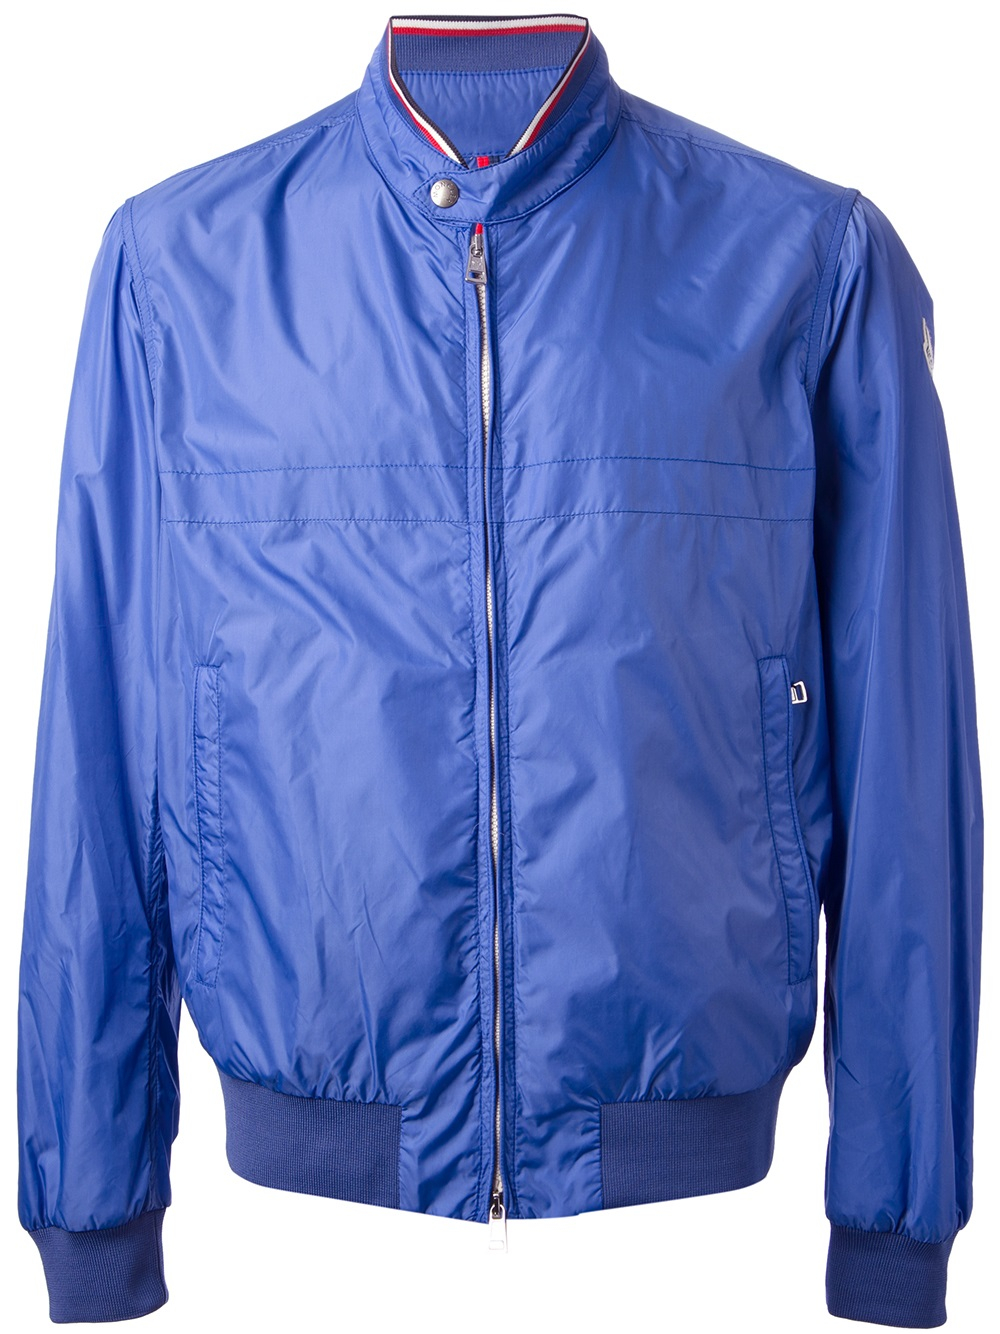 Blue Windbreaker Jacket Fit Jacket